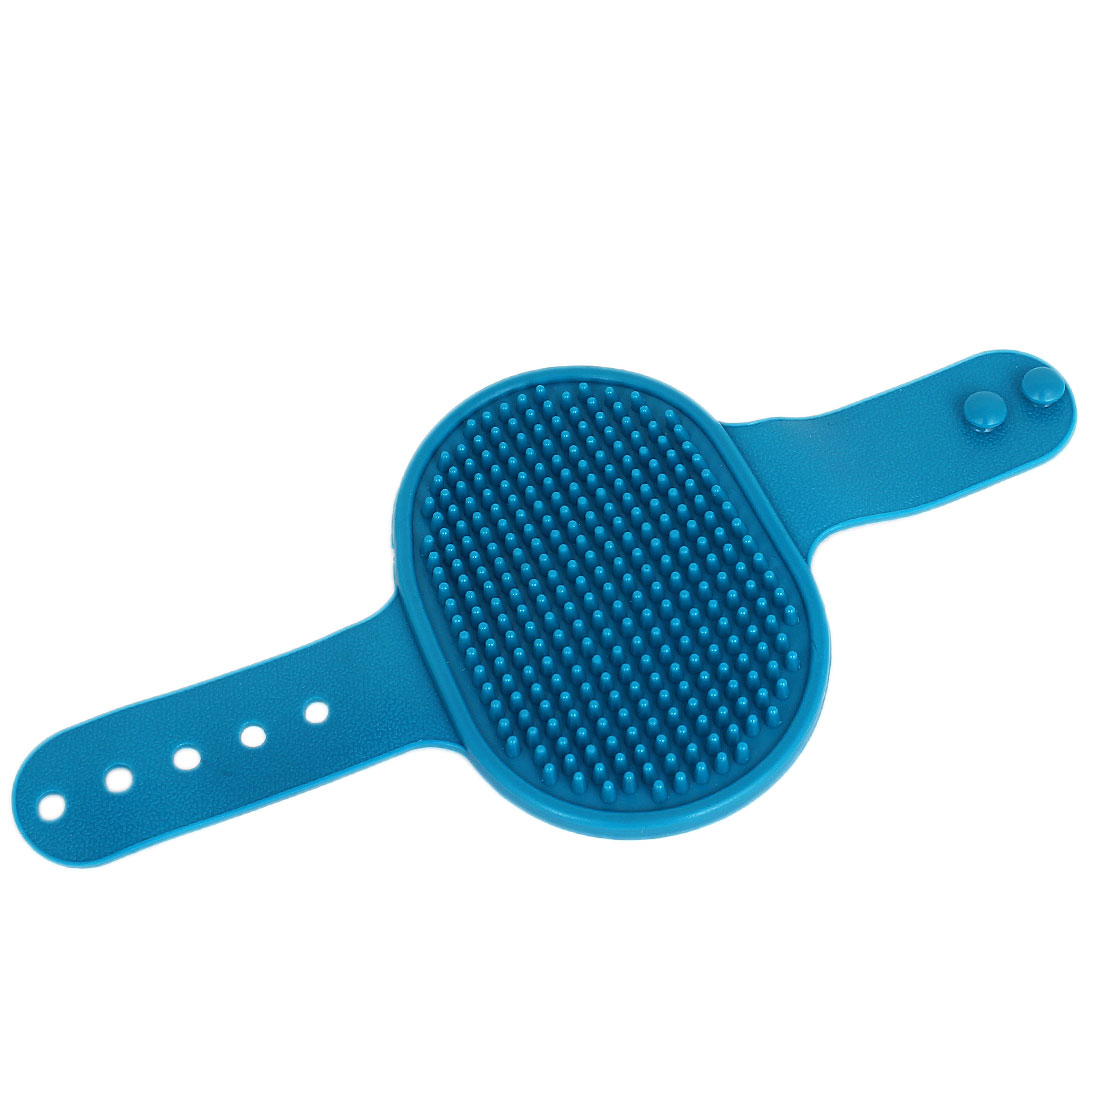 Unique Bargains Pet Dog Cat Adjustable Rubber Bathing Grooming Glove Brush Cyan